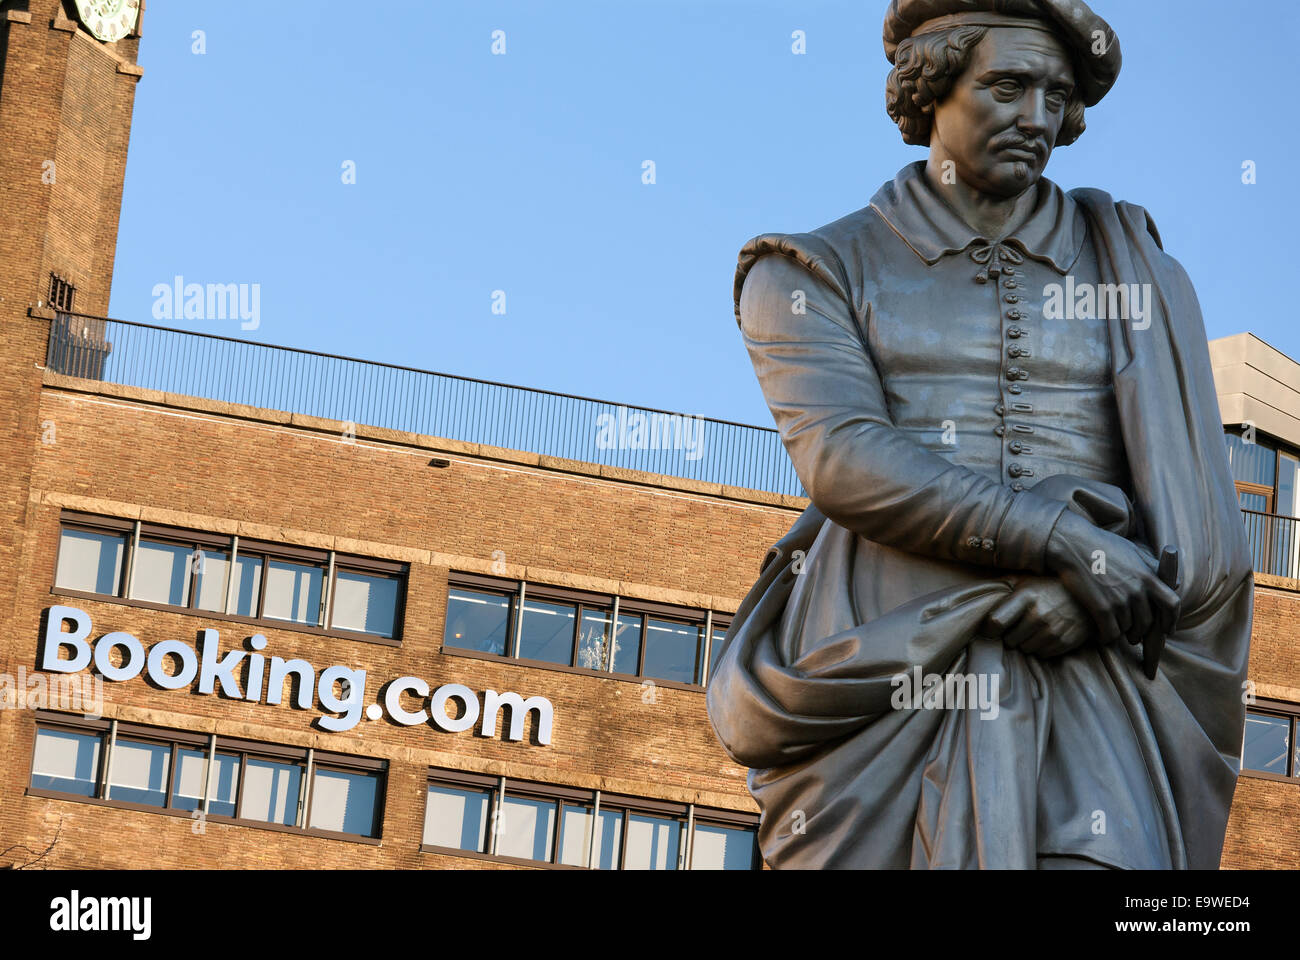 Booking.com HQ headquarters head office building on the Rembrandtplein Rembrandt Square with the statue of Rembrandt. - Stock Image